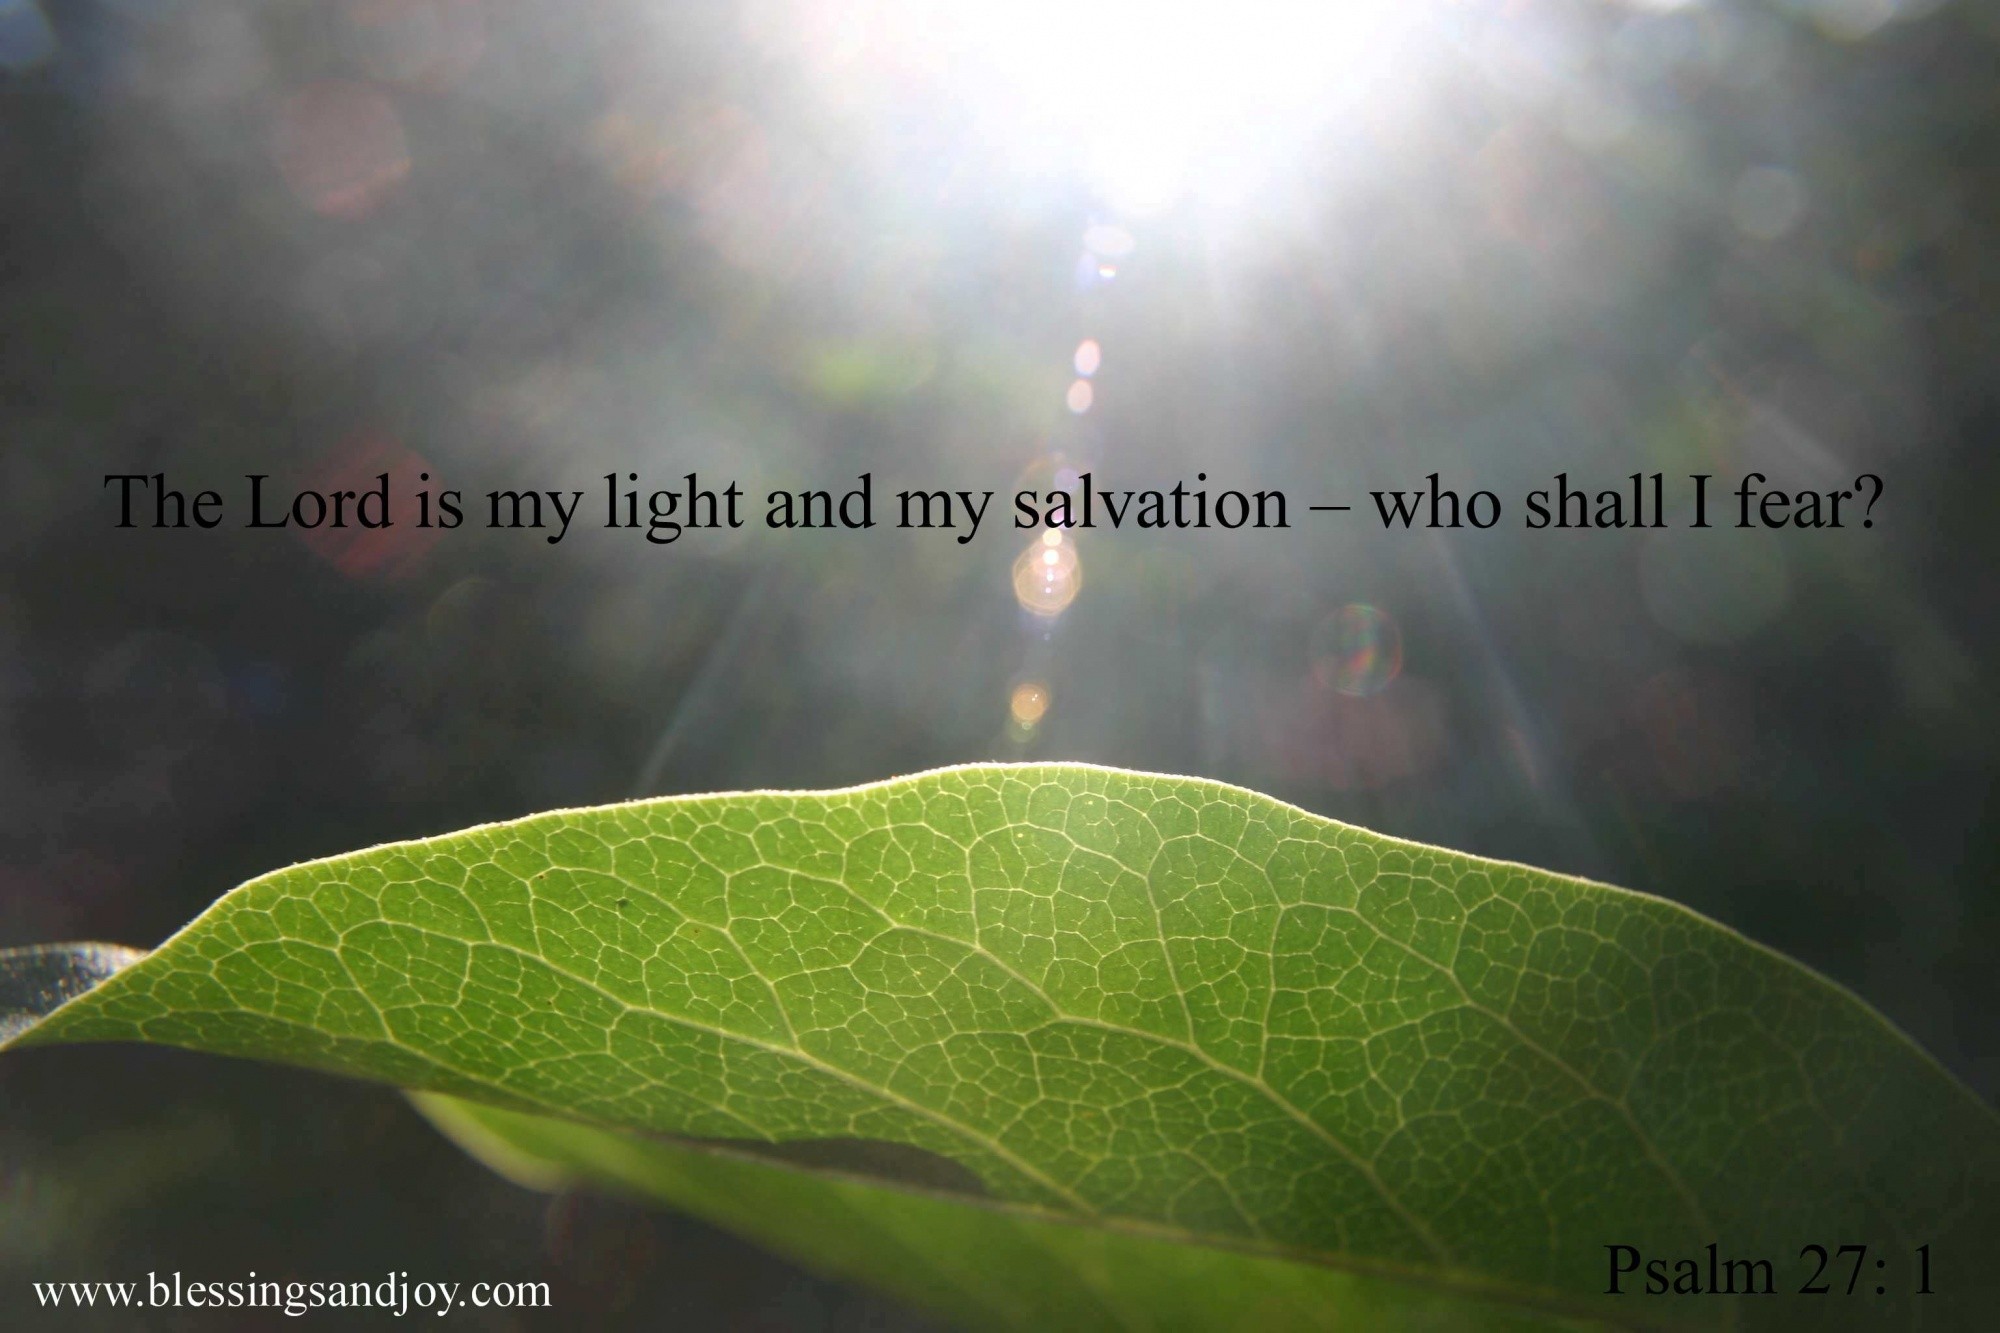 SALVATION_Psalm_27_1_The_Lord_is_my_light_and_salvation.ch-43